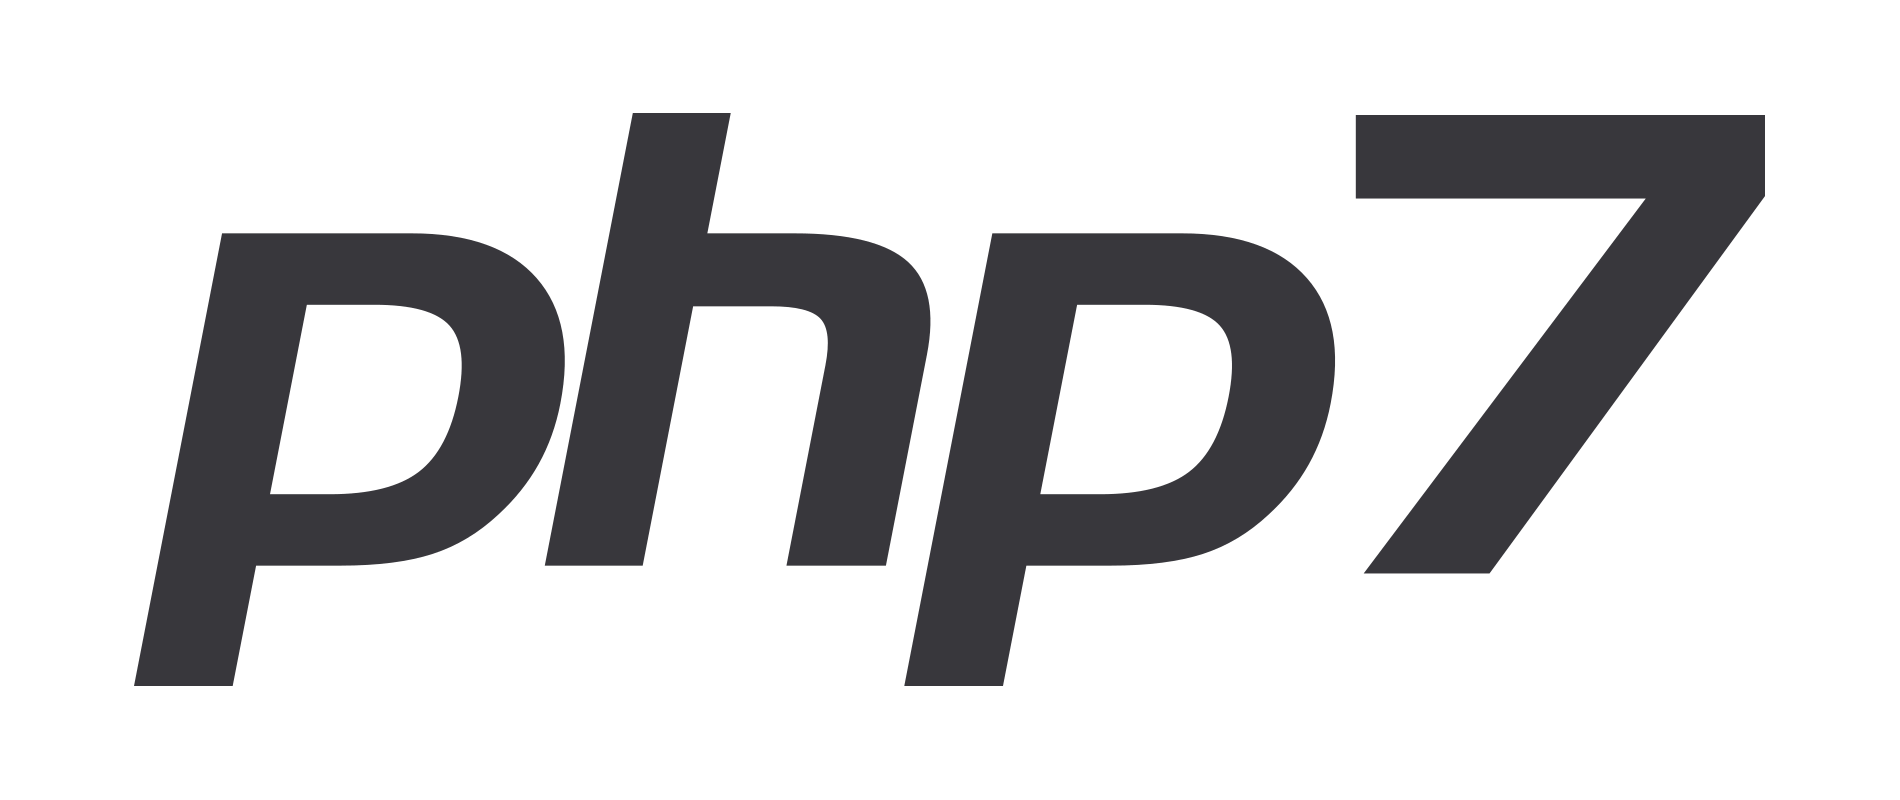 php7image